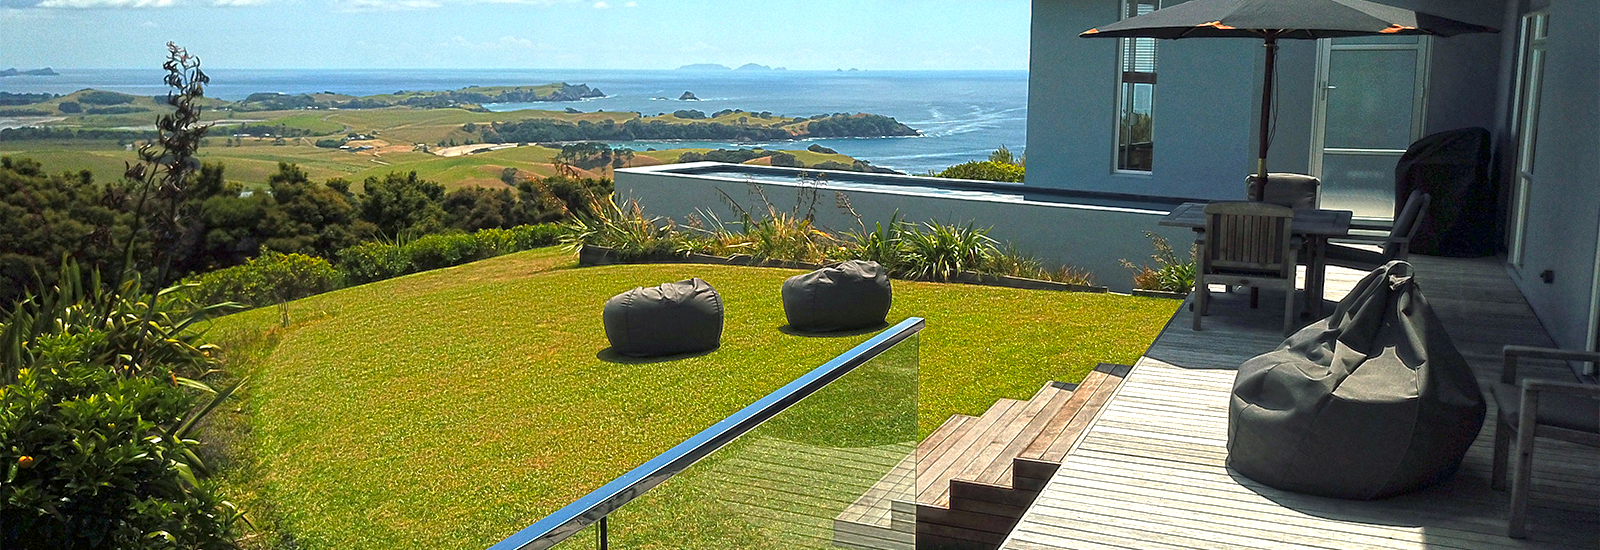 Accommodation with pool whangarei